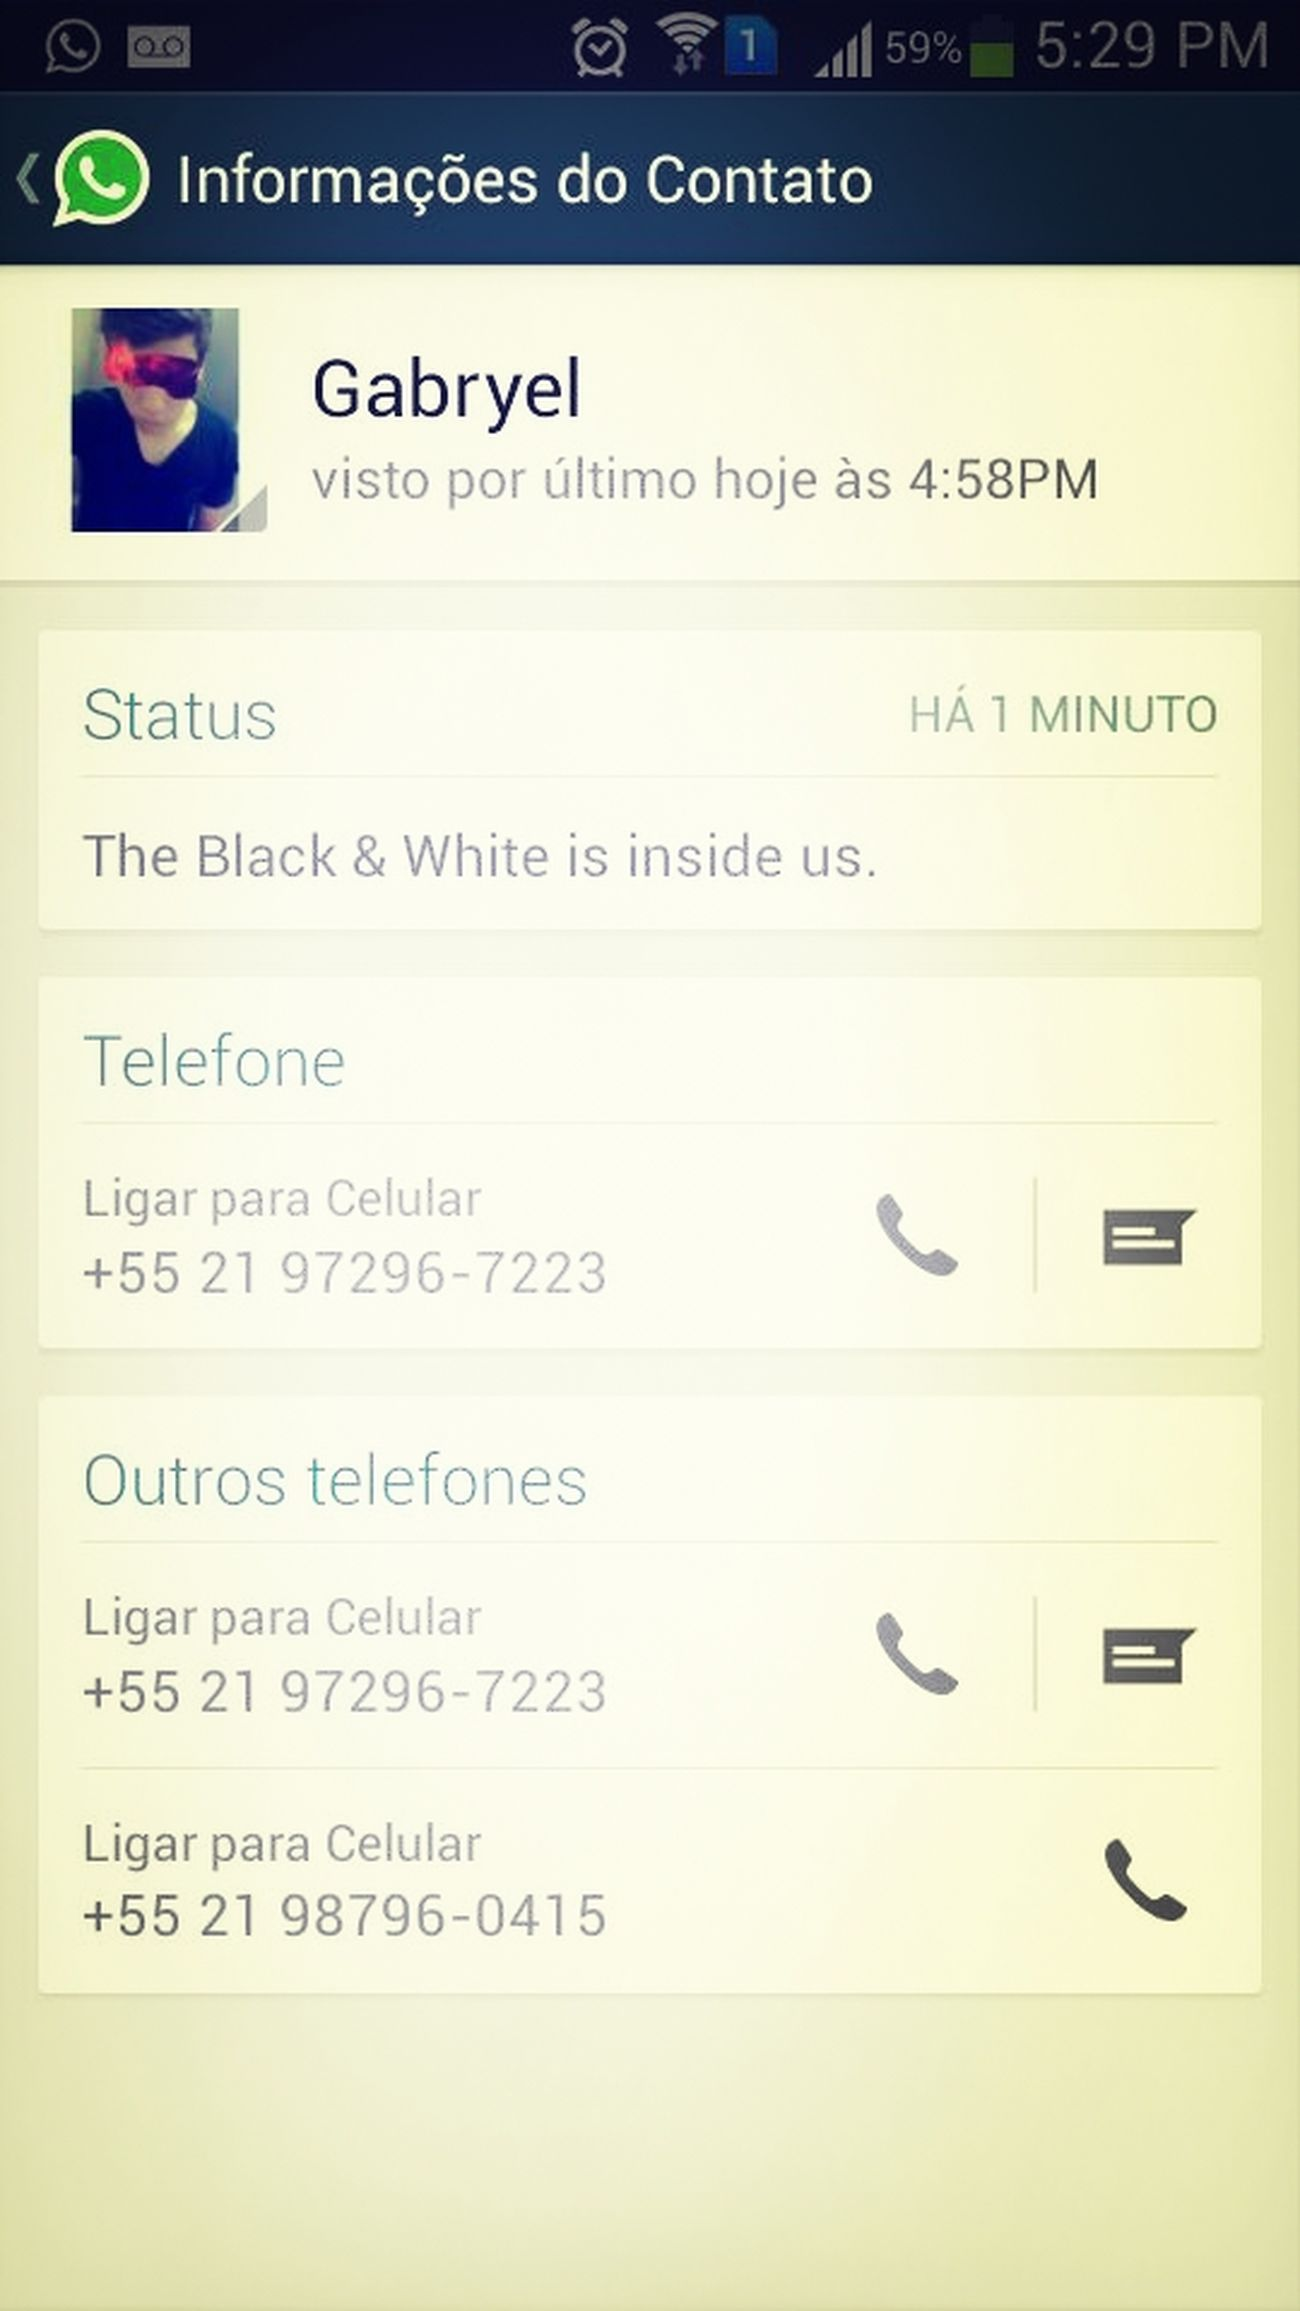 Add Me On Whatsapp WhatsApp Whatsapp Status Messaggiwhatsapp Meu whatsapp (My Whatsapp)